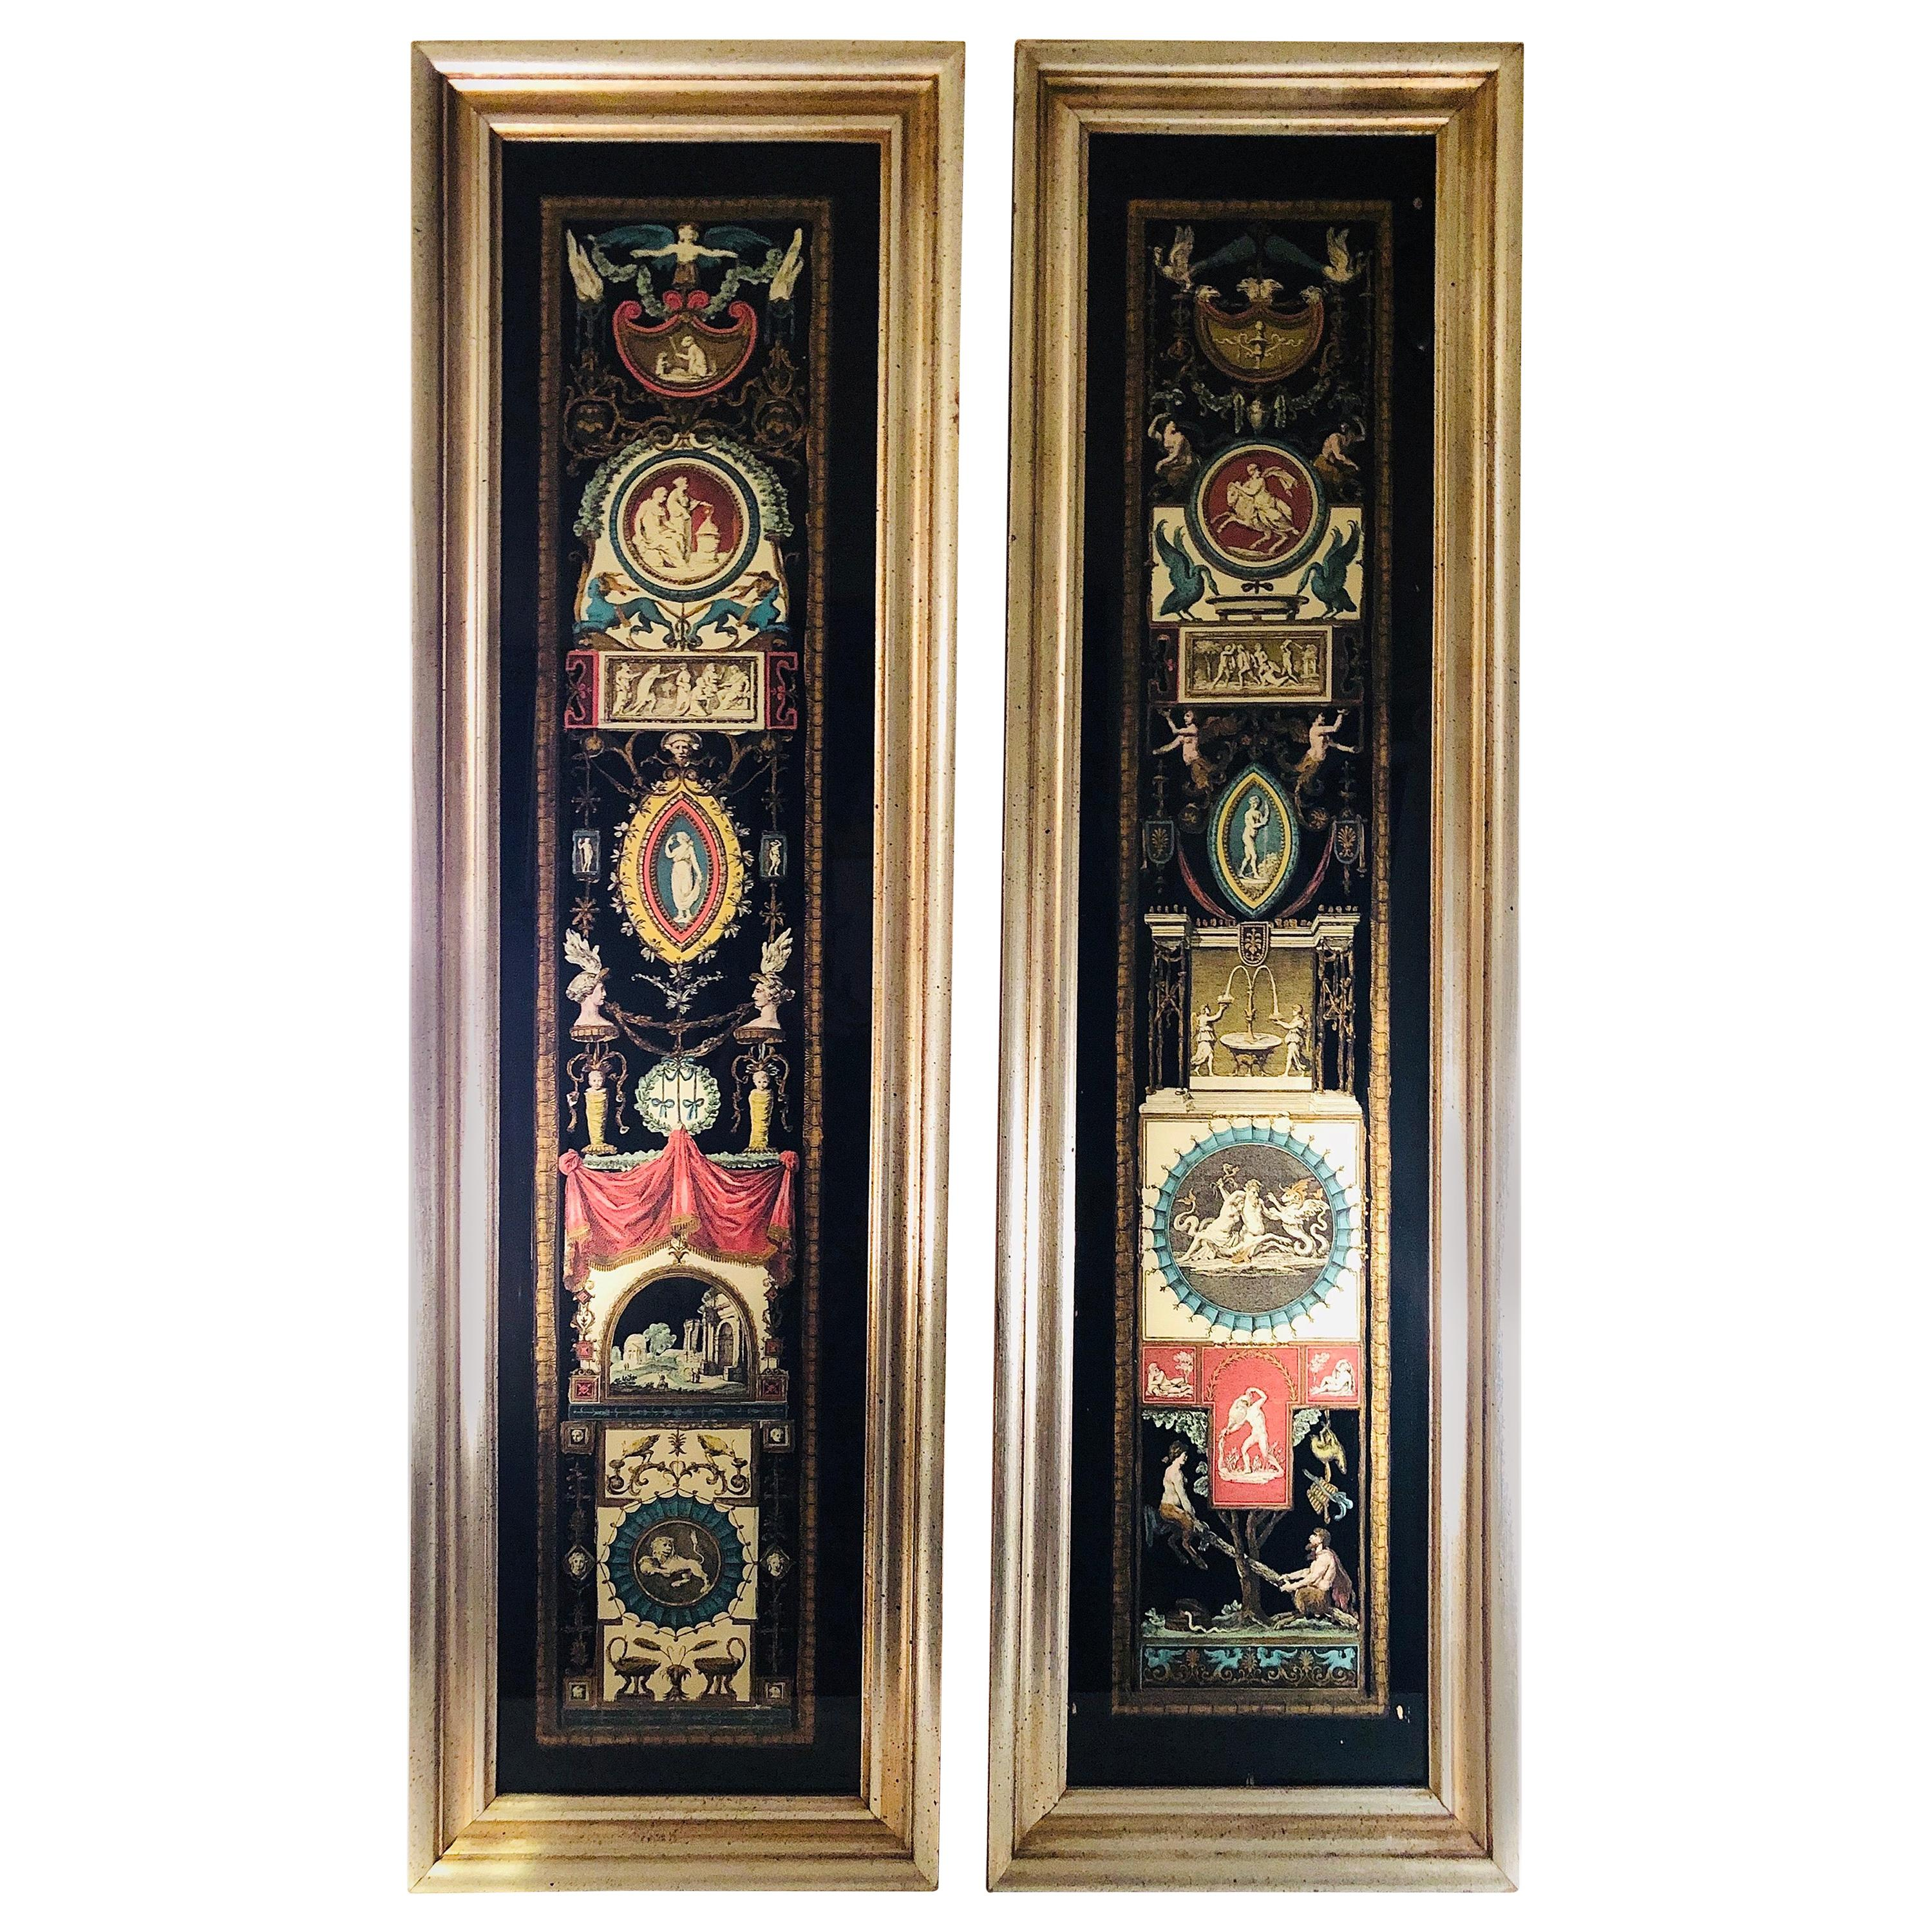 Pair of Neoclassical Reverse Paintings on Glass with Many Intricate Paintings